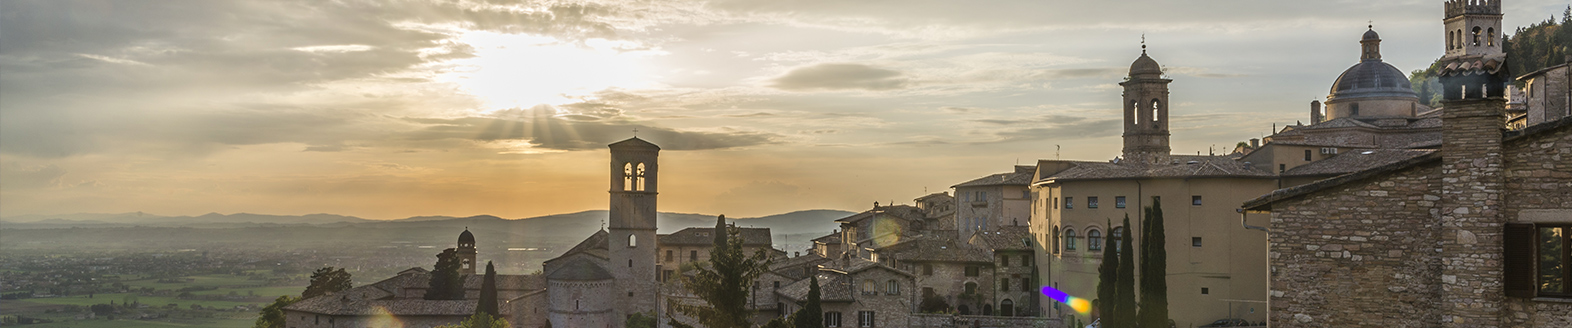 Get amazed with a sunset over Assisi with a Grayline Rome tour directly from Rome